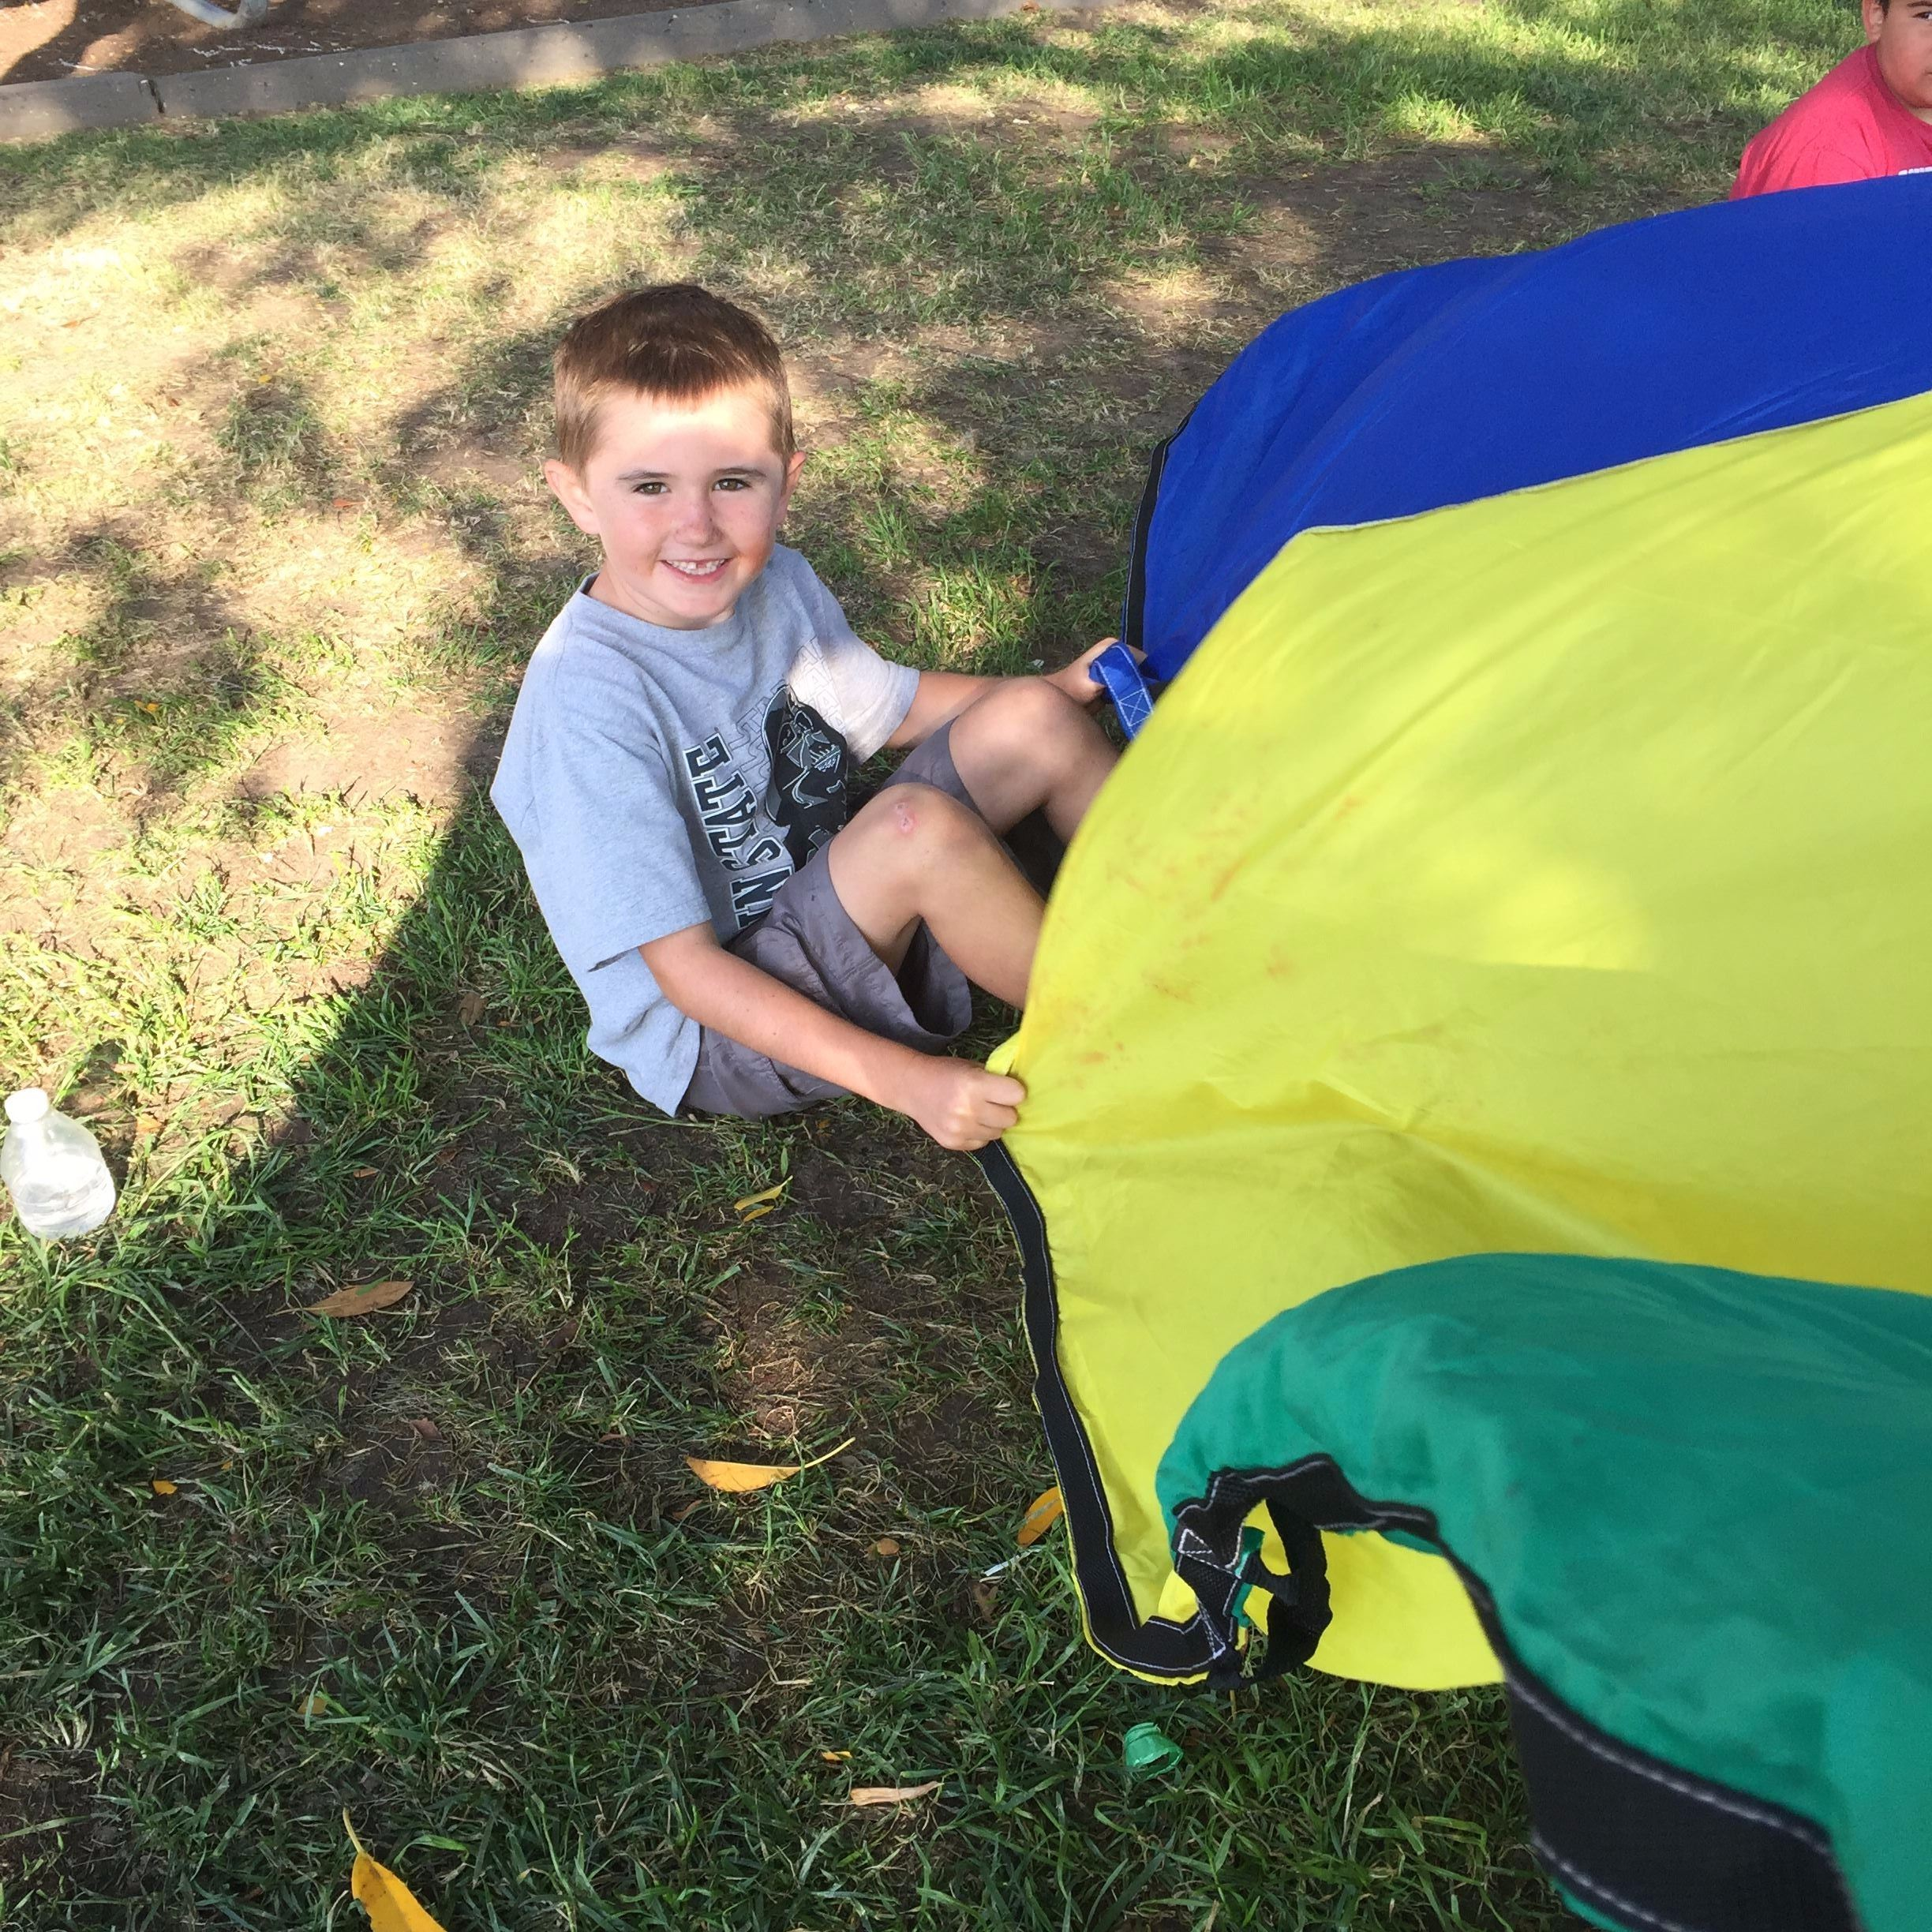 Kids Night Out Parachute Fun